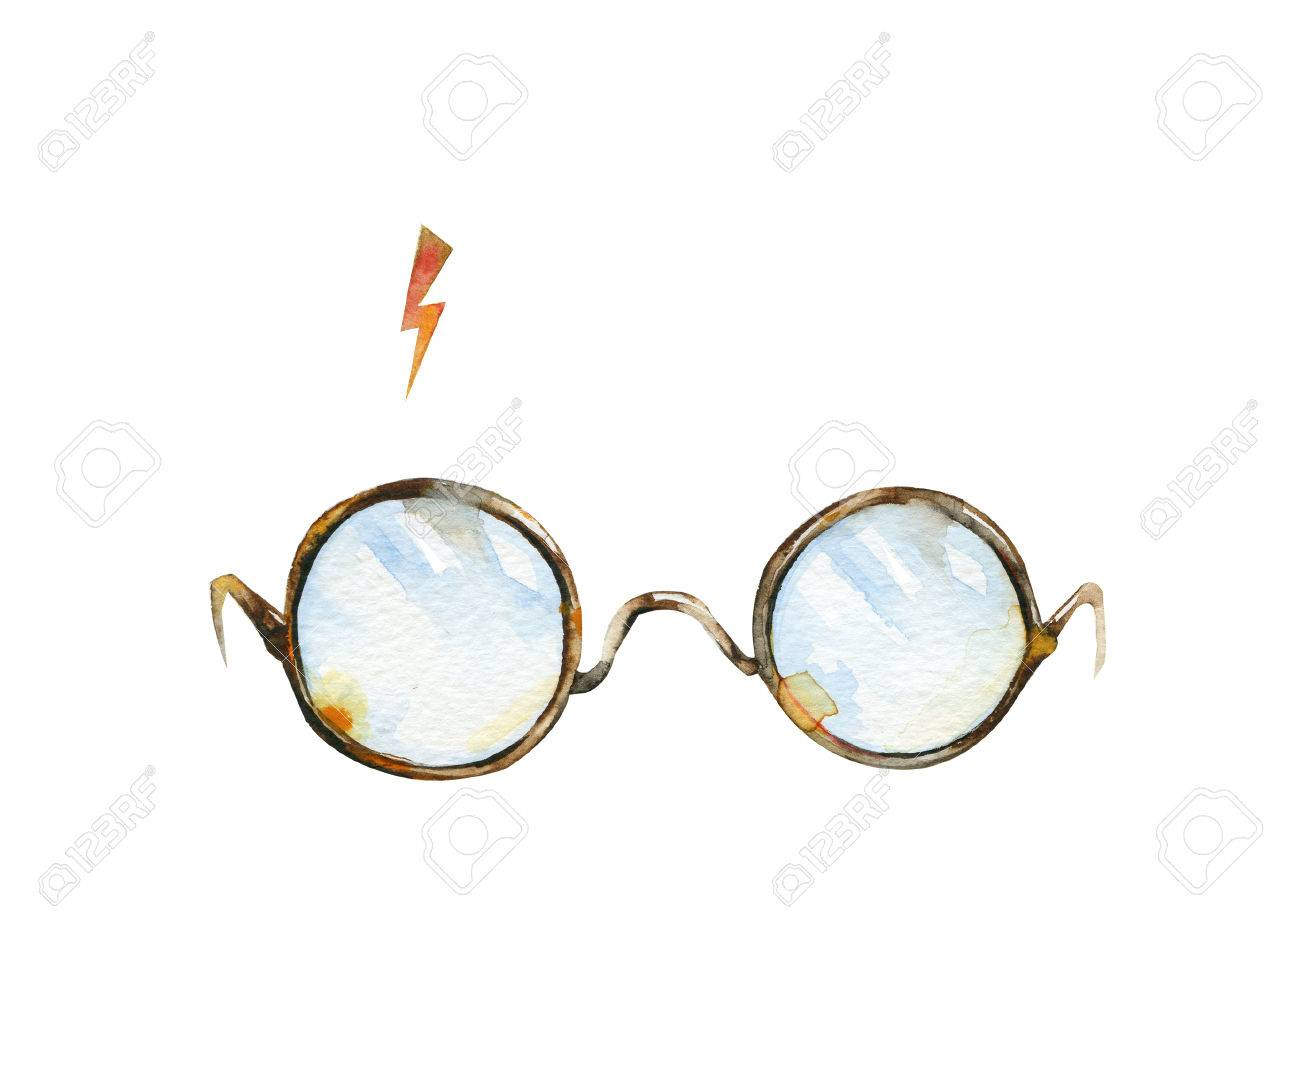 8f603c308b2 Illustration - Round glasses and lighting. Watercolor illustration. Can be  used as T-shirt print, Halloween textile decoration print, card, child wear  decor ...